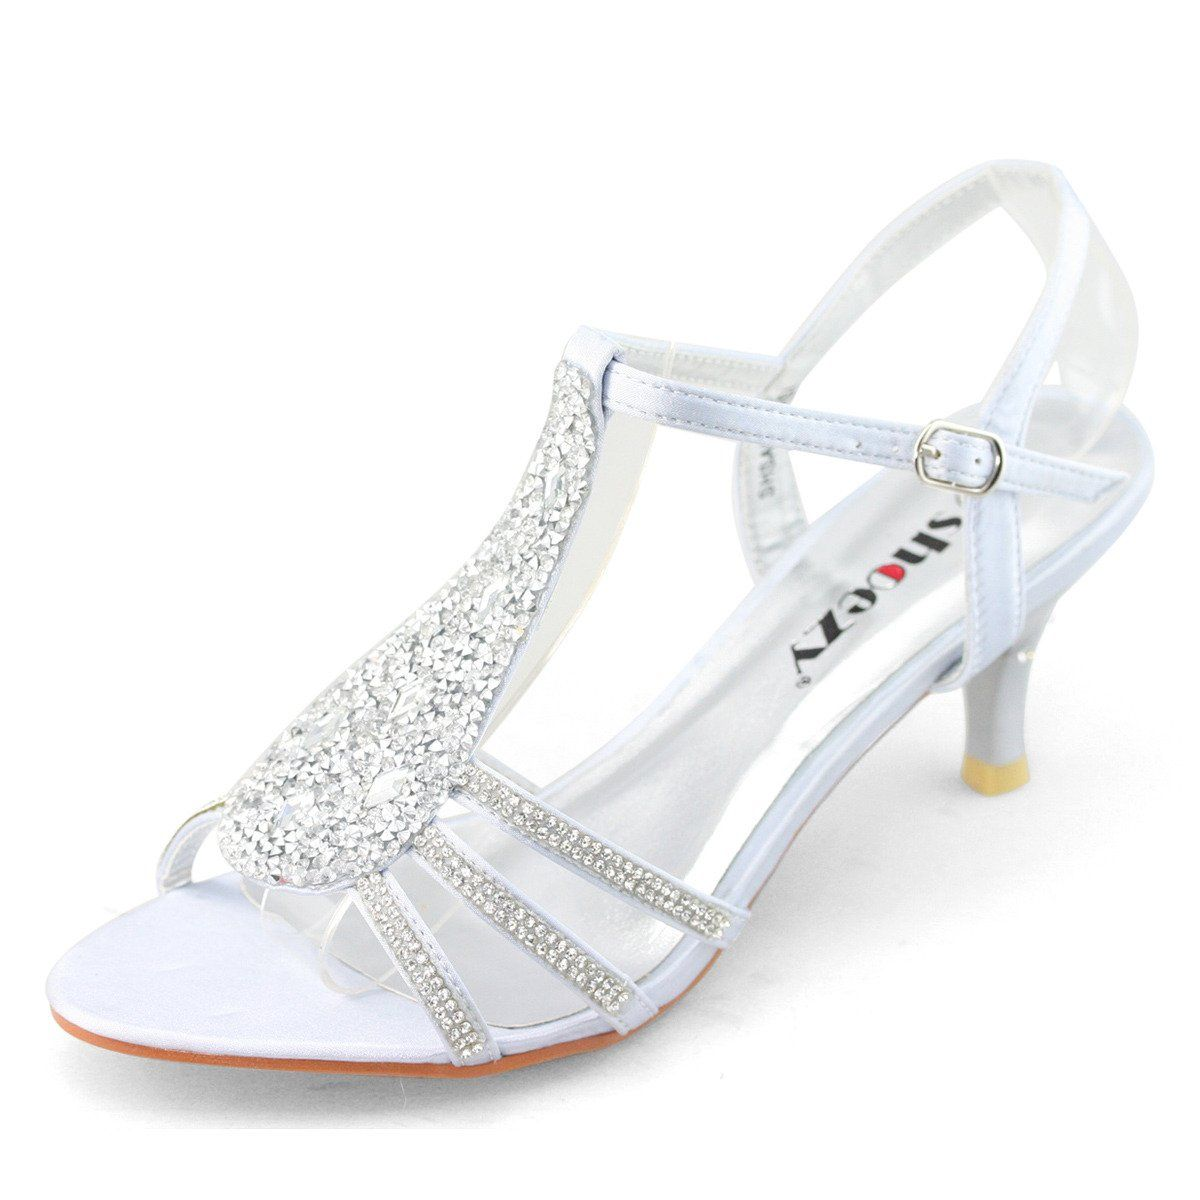 366b466fd6db4 Amazon.com: SHOEZY New Women Ladies Low Heels Wedding Prom Shoes ...